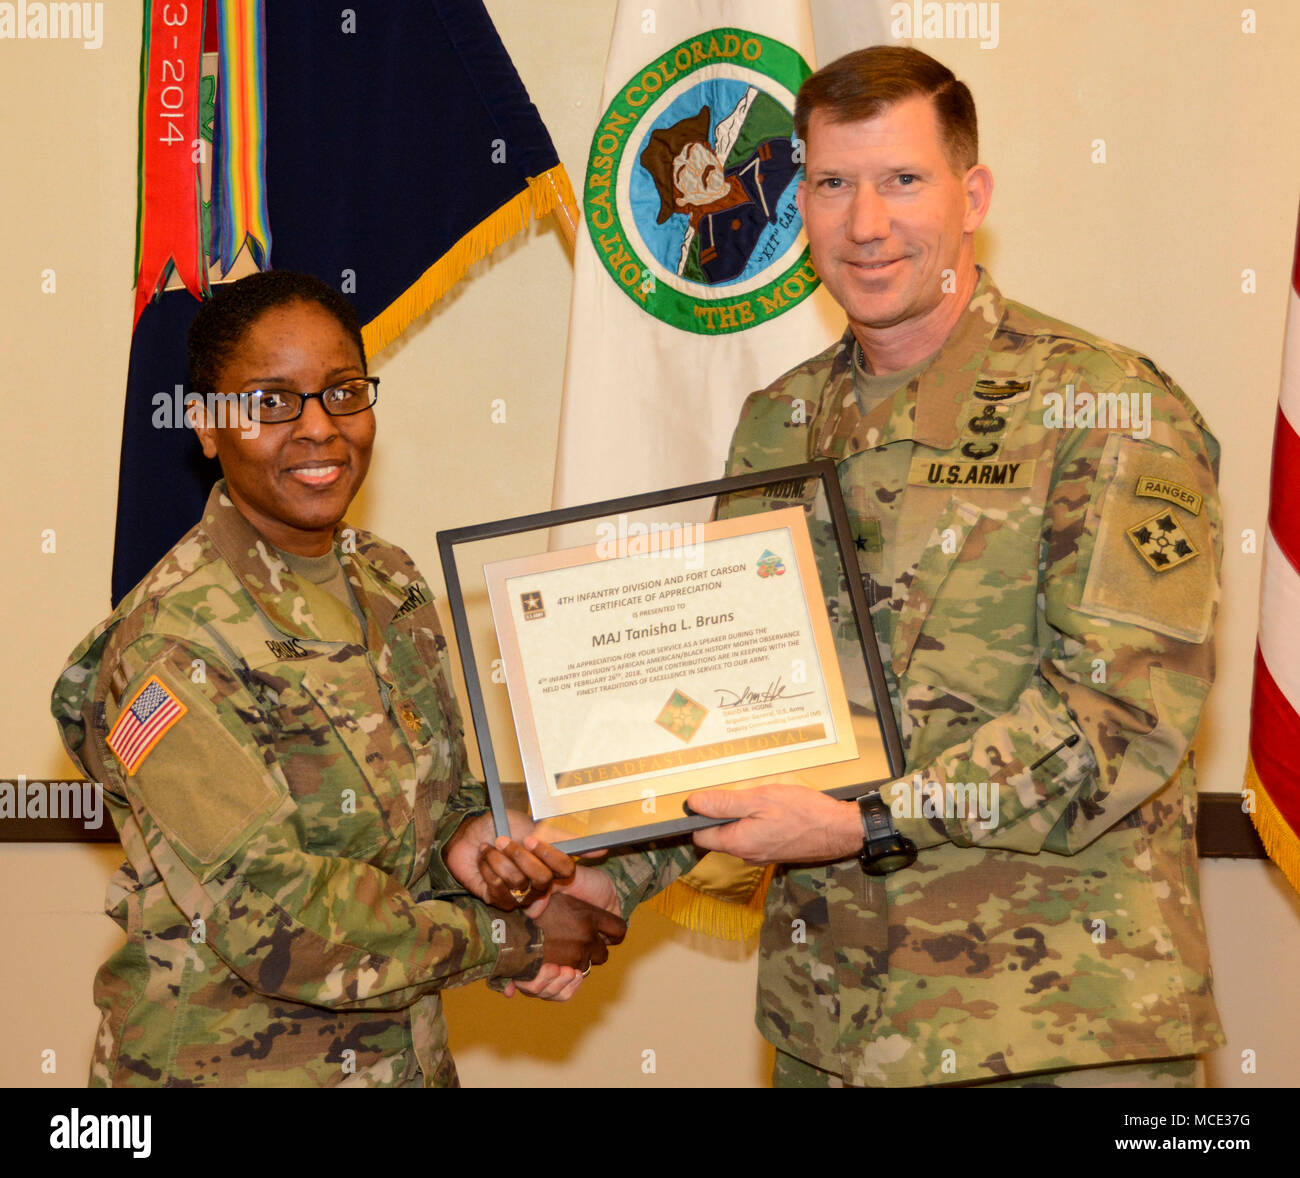 FORT CARSON, Colorado - Brig. Gen, Dave Hodne, Deputy Commanding General, 4th Infantry Division, presents Maj.Tanisha Bruns, the Clinical Nurse OIC for the Iron Horse Clinic, a Certificate of Appreciation for being a guest speaker during the African American/Black History Month at the Elkhorn Conference Center Feb. 26, 2018. (U.S. Army photo by Staff Sgt. Daniel Wyatt) - Stock Image